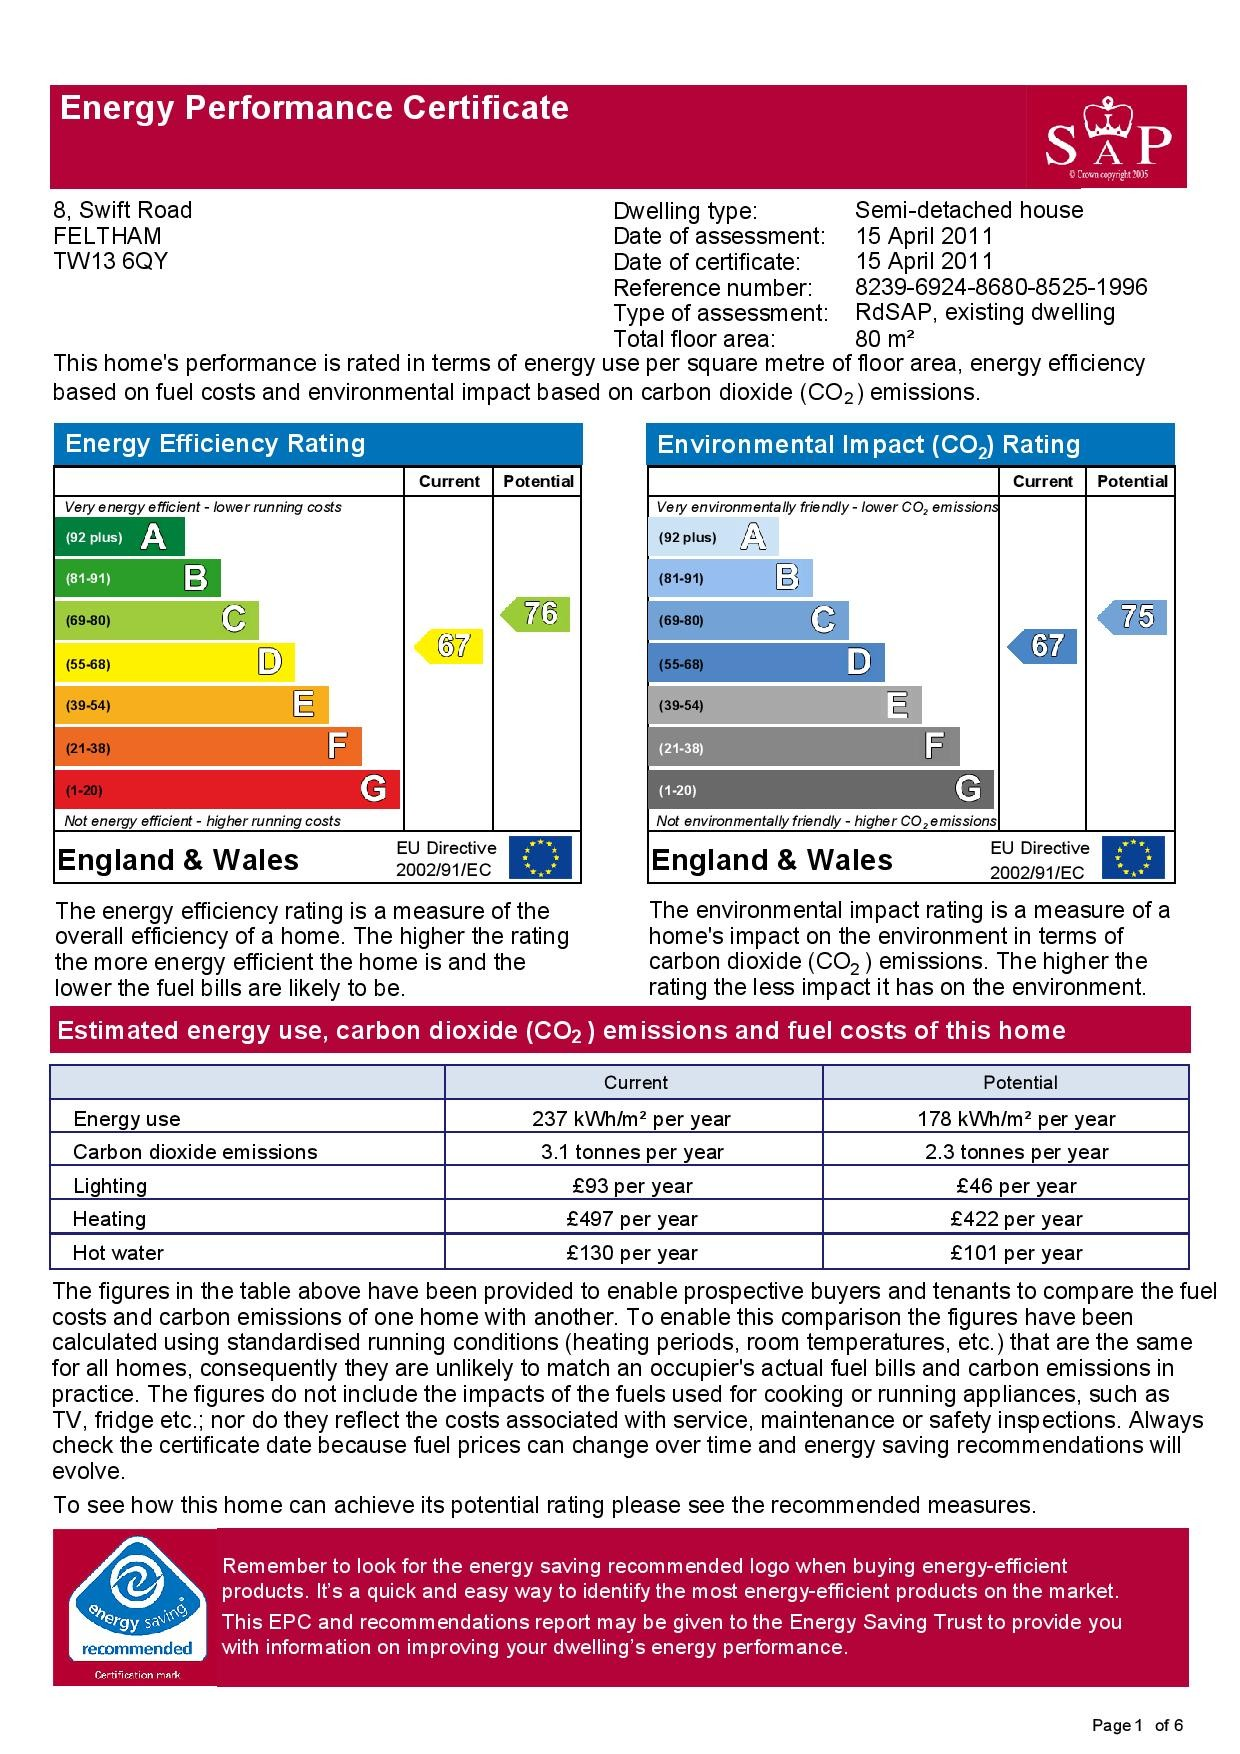 EPC Graph for 8 Swift Road, Feltham, Middlesex TW13 6QY